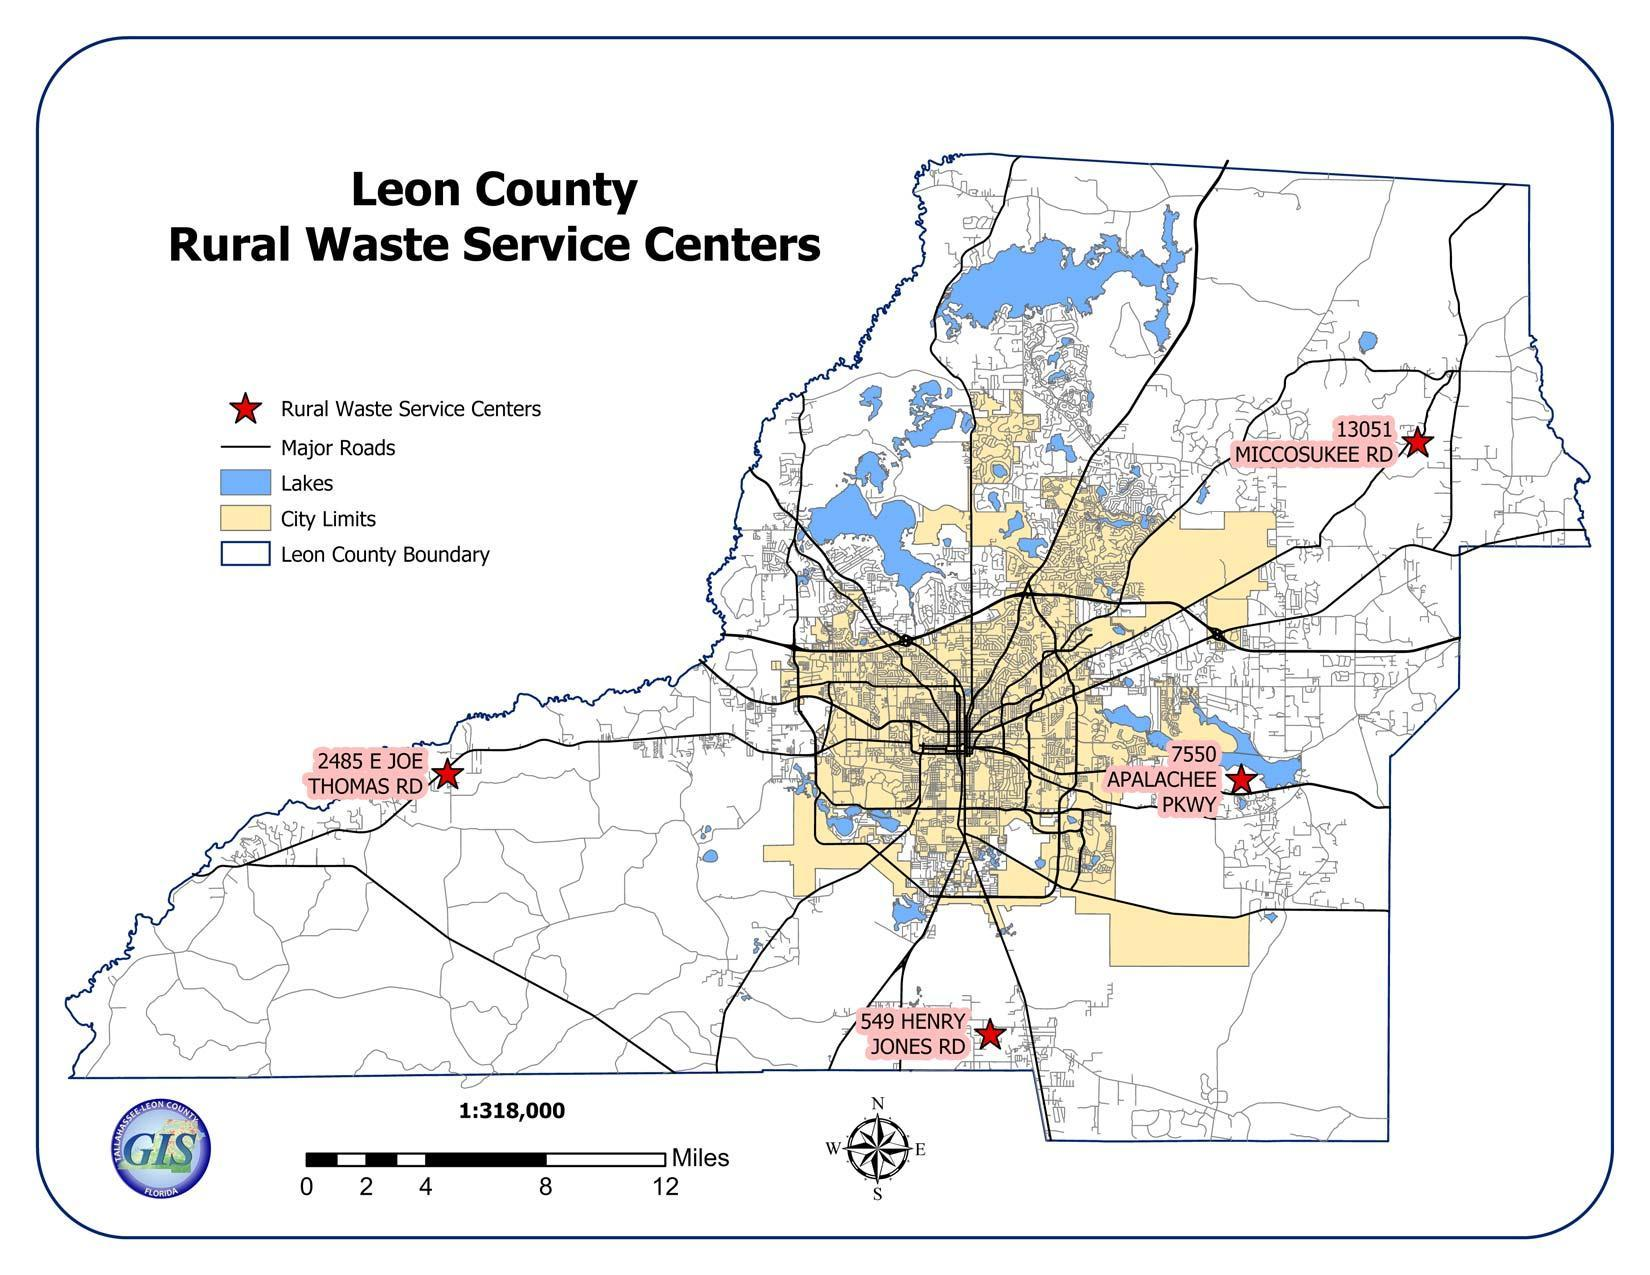 Leon County Rural Waste Service Centers